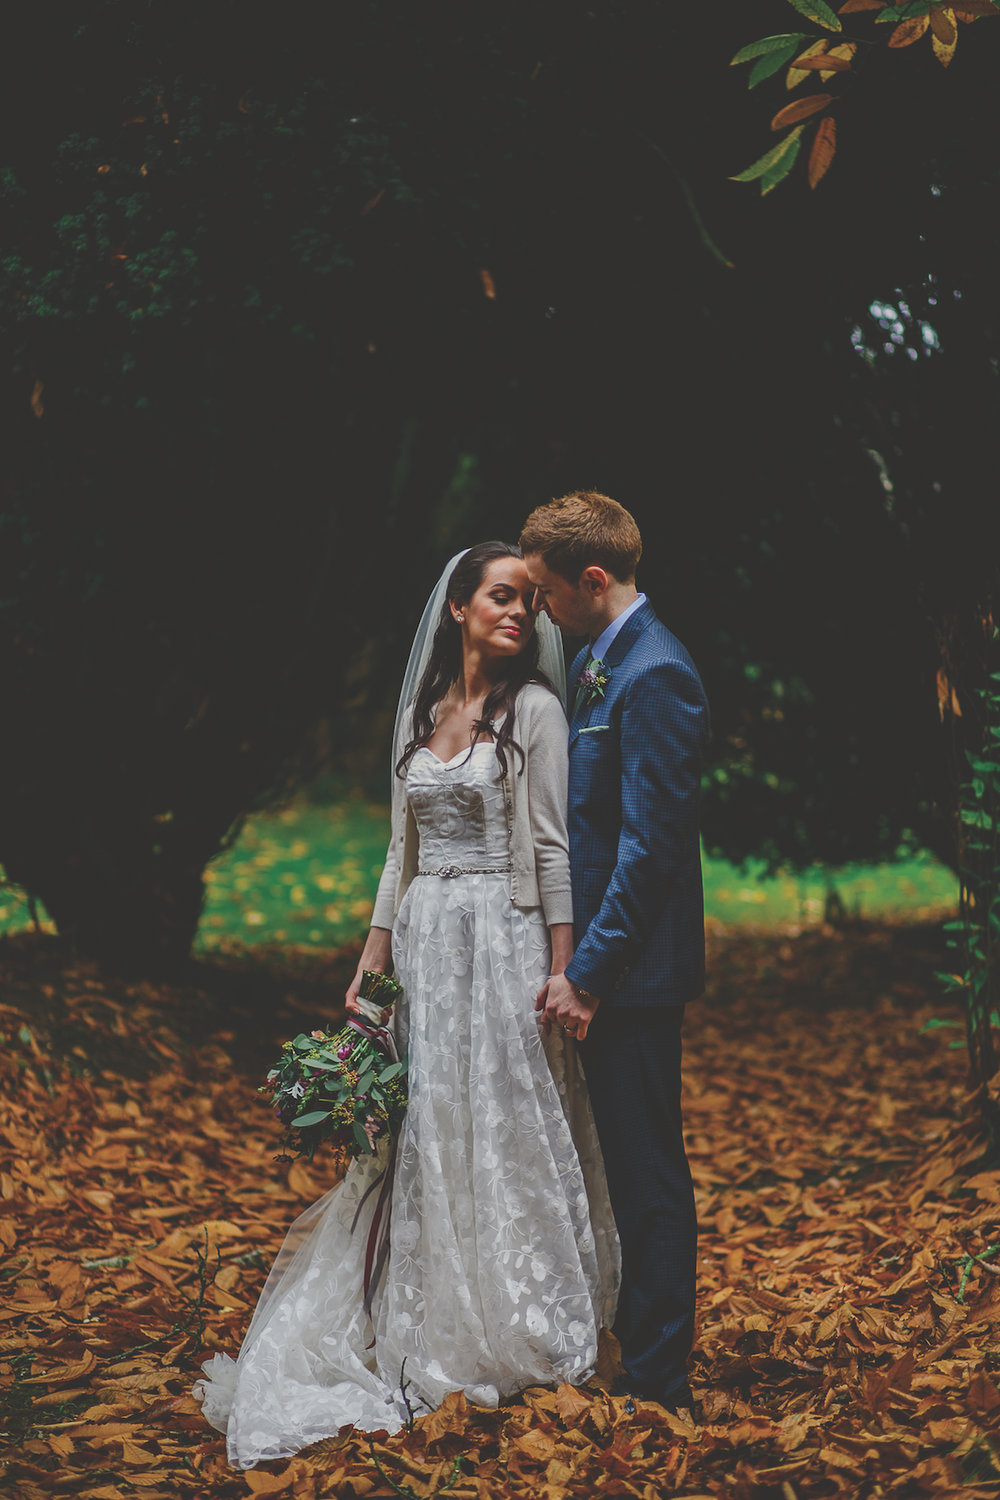 gather_and_tides_wedding_photographer_larchfield_autumn_northern_ireland_Wedding_inspire_Weddings_1.jpg